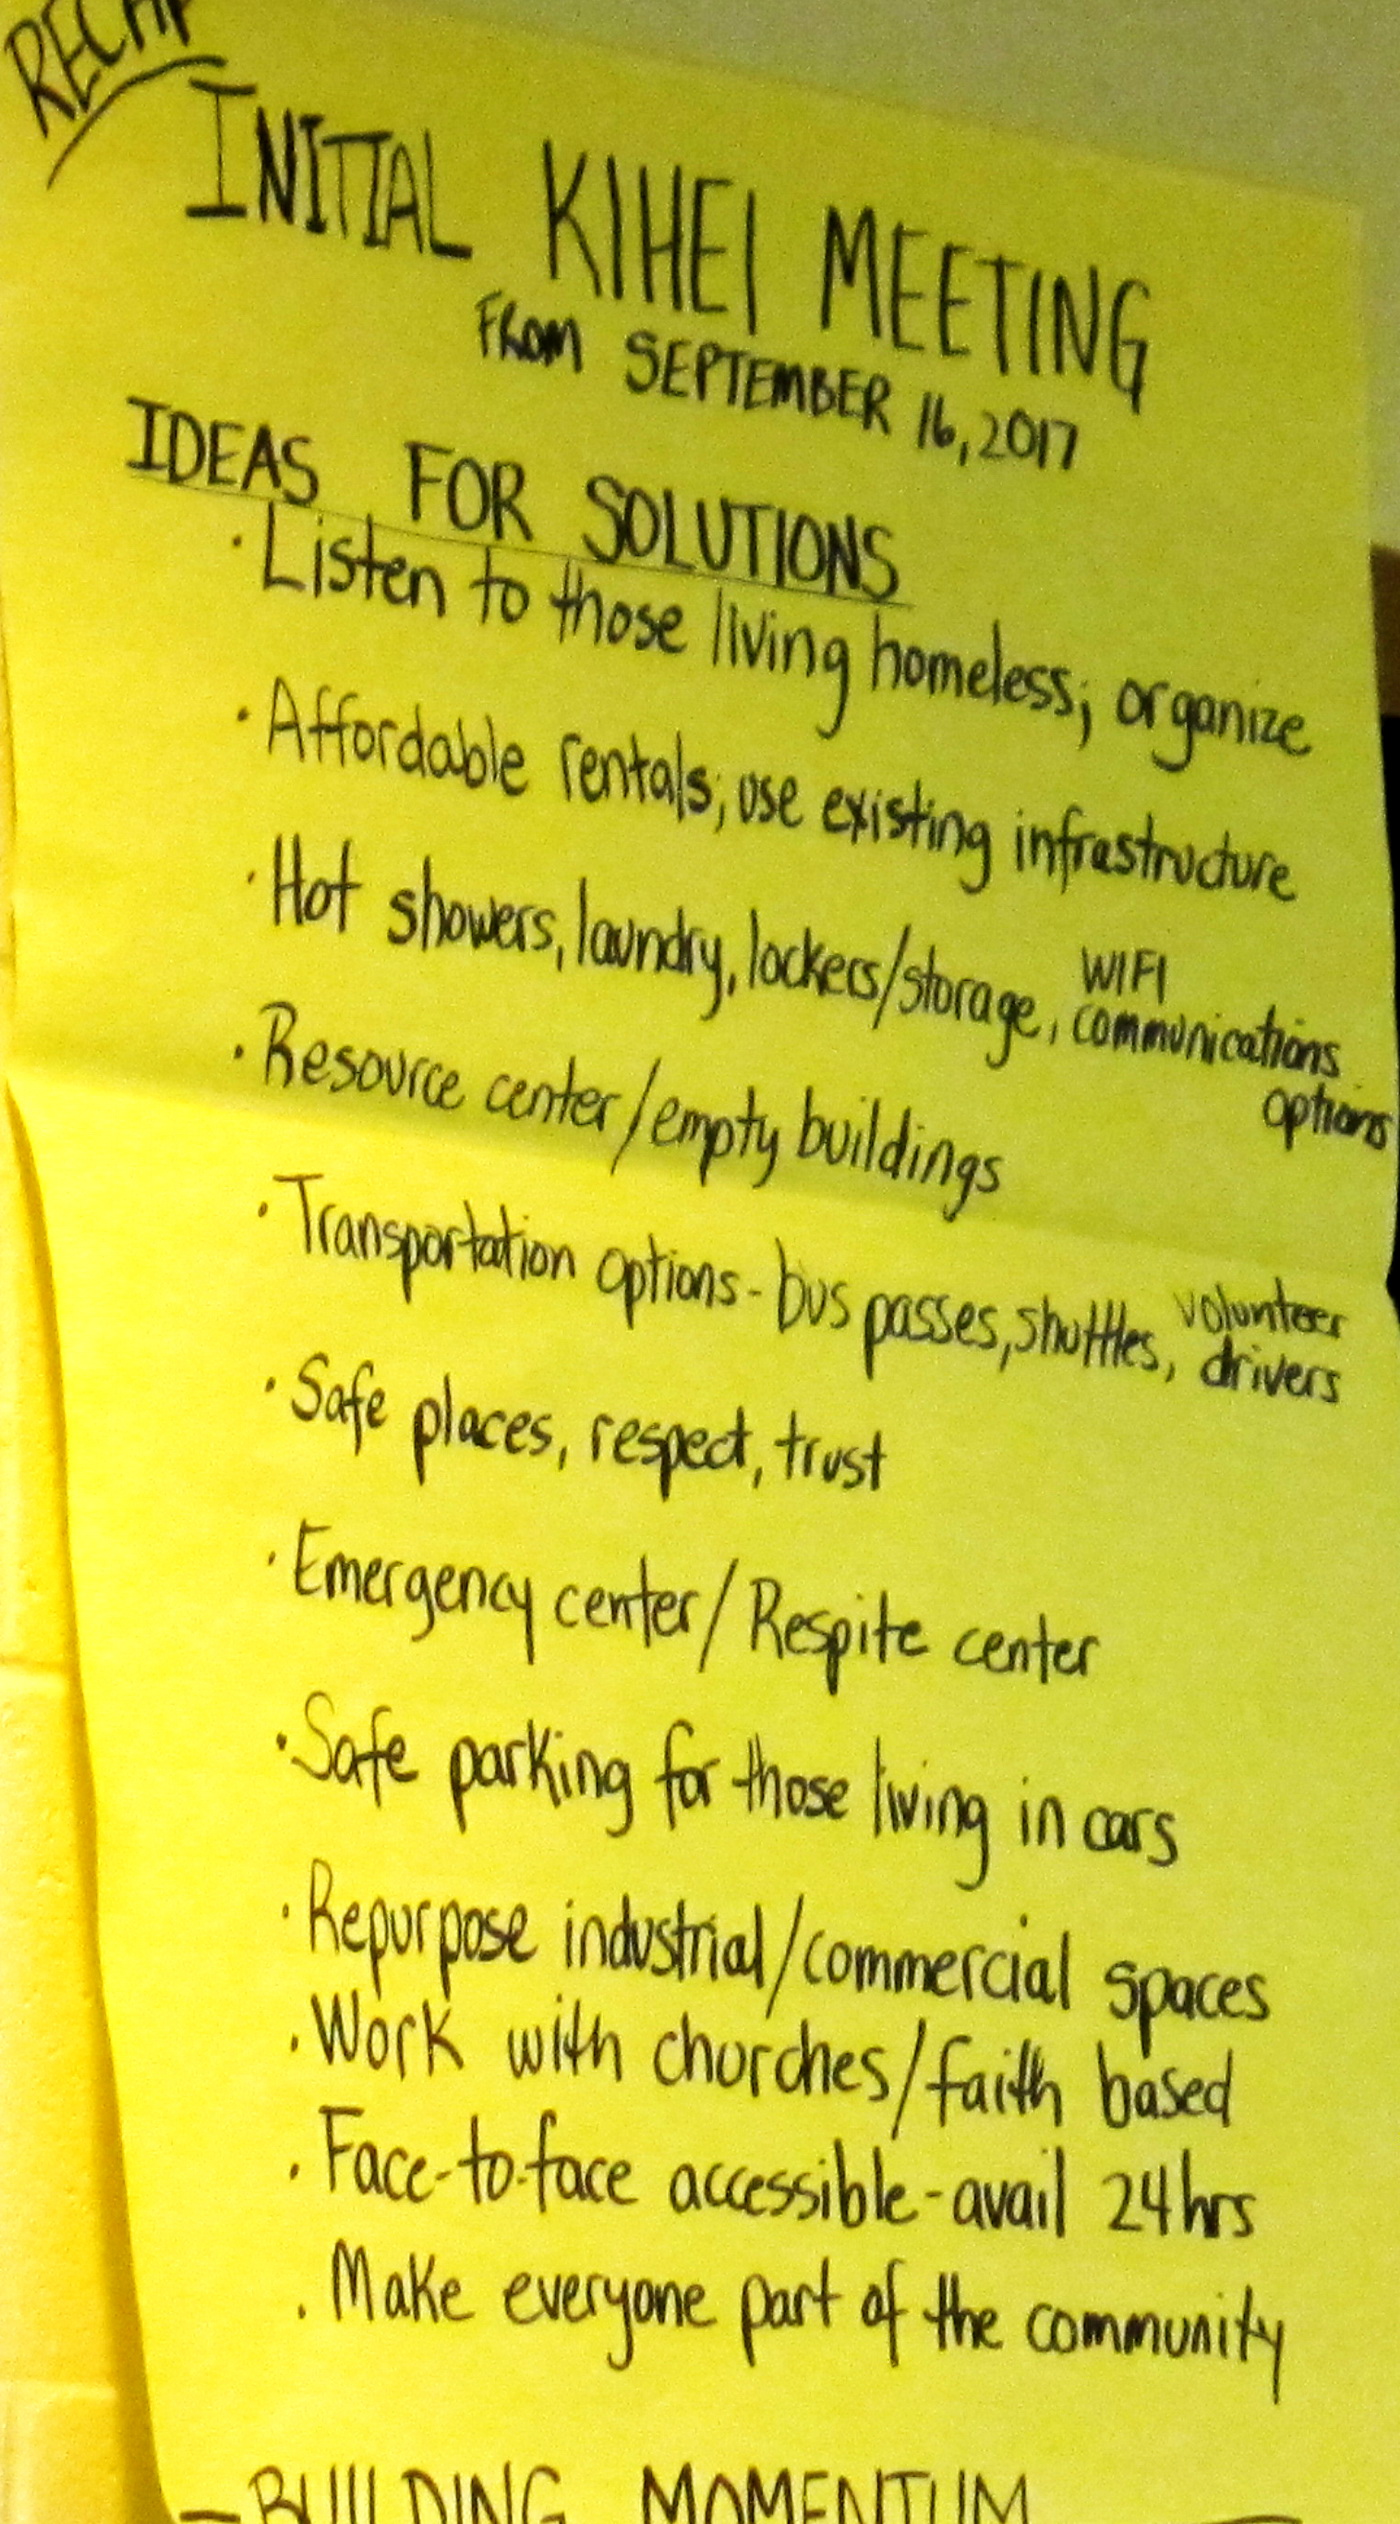 Homelessness meeting at Kihei Community Center draws over 70 people